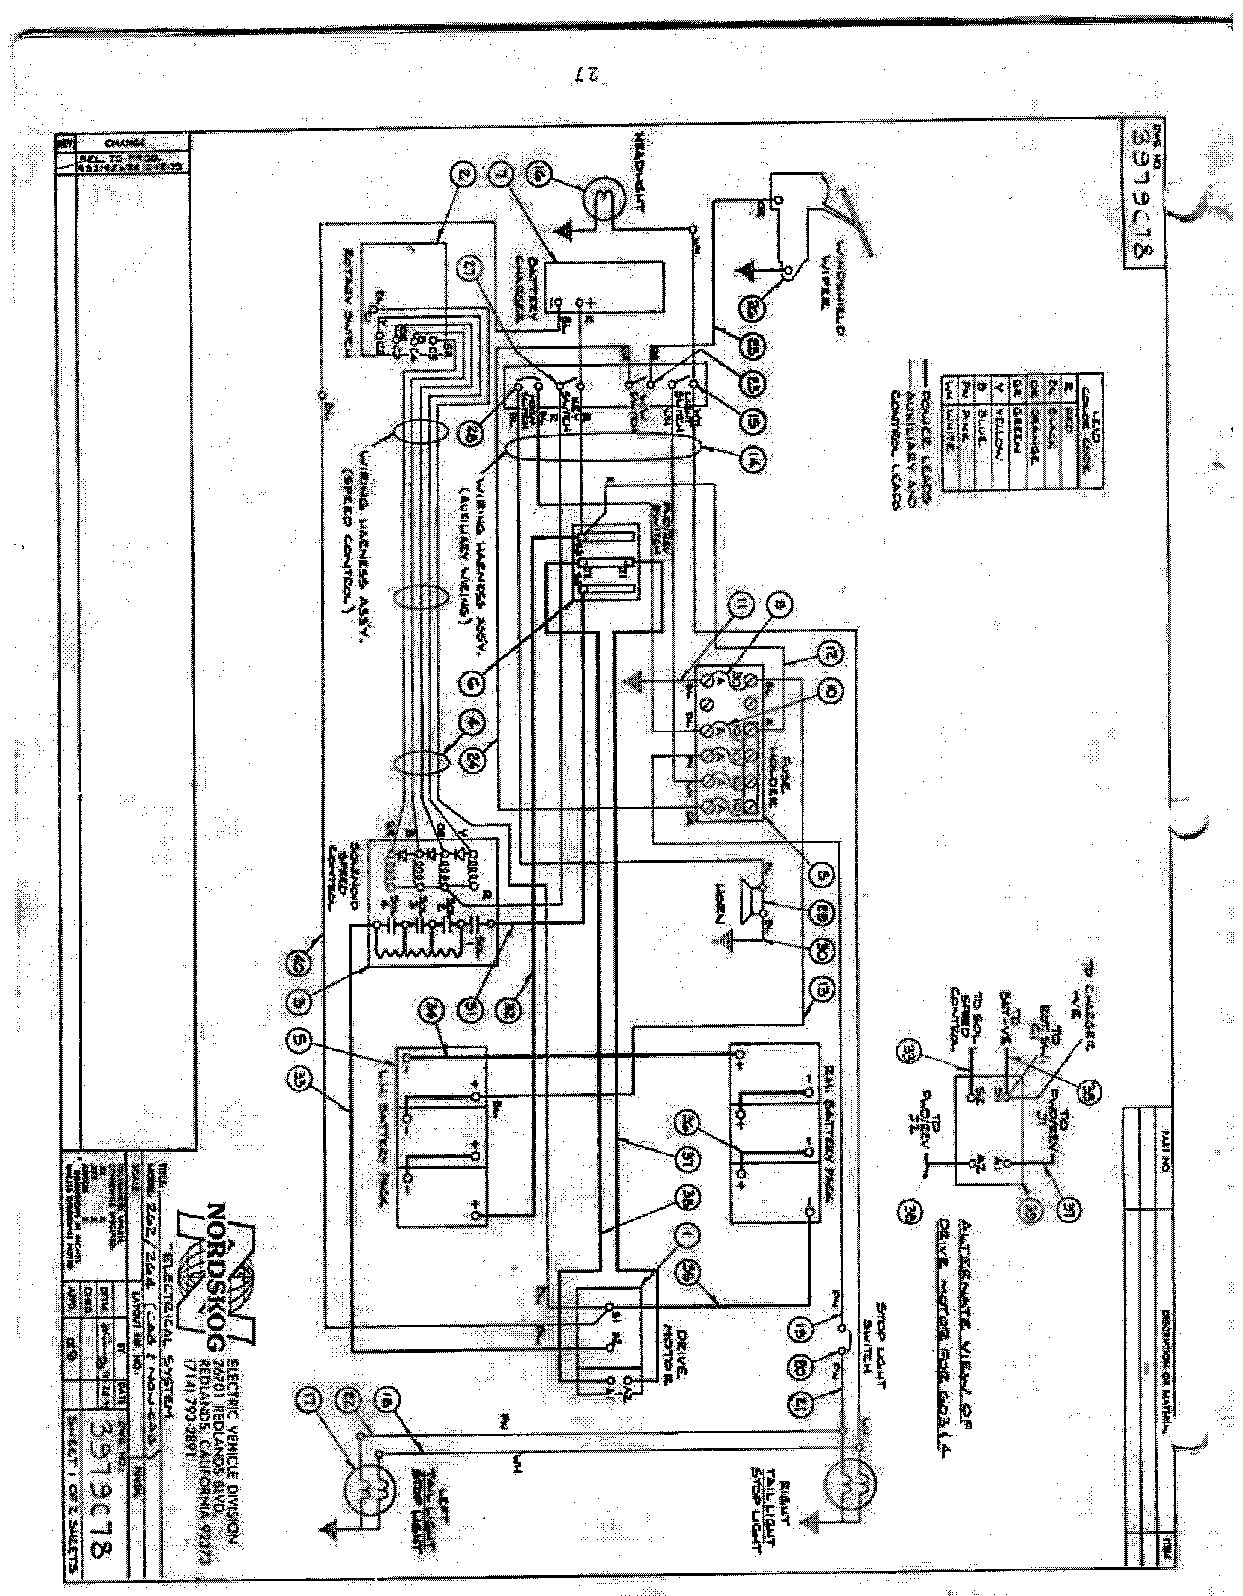 hight resolution of golf cart wiring diagram westinghouse 529 agricultural and westinghouse golf cart wiring diagram